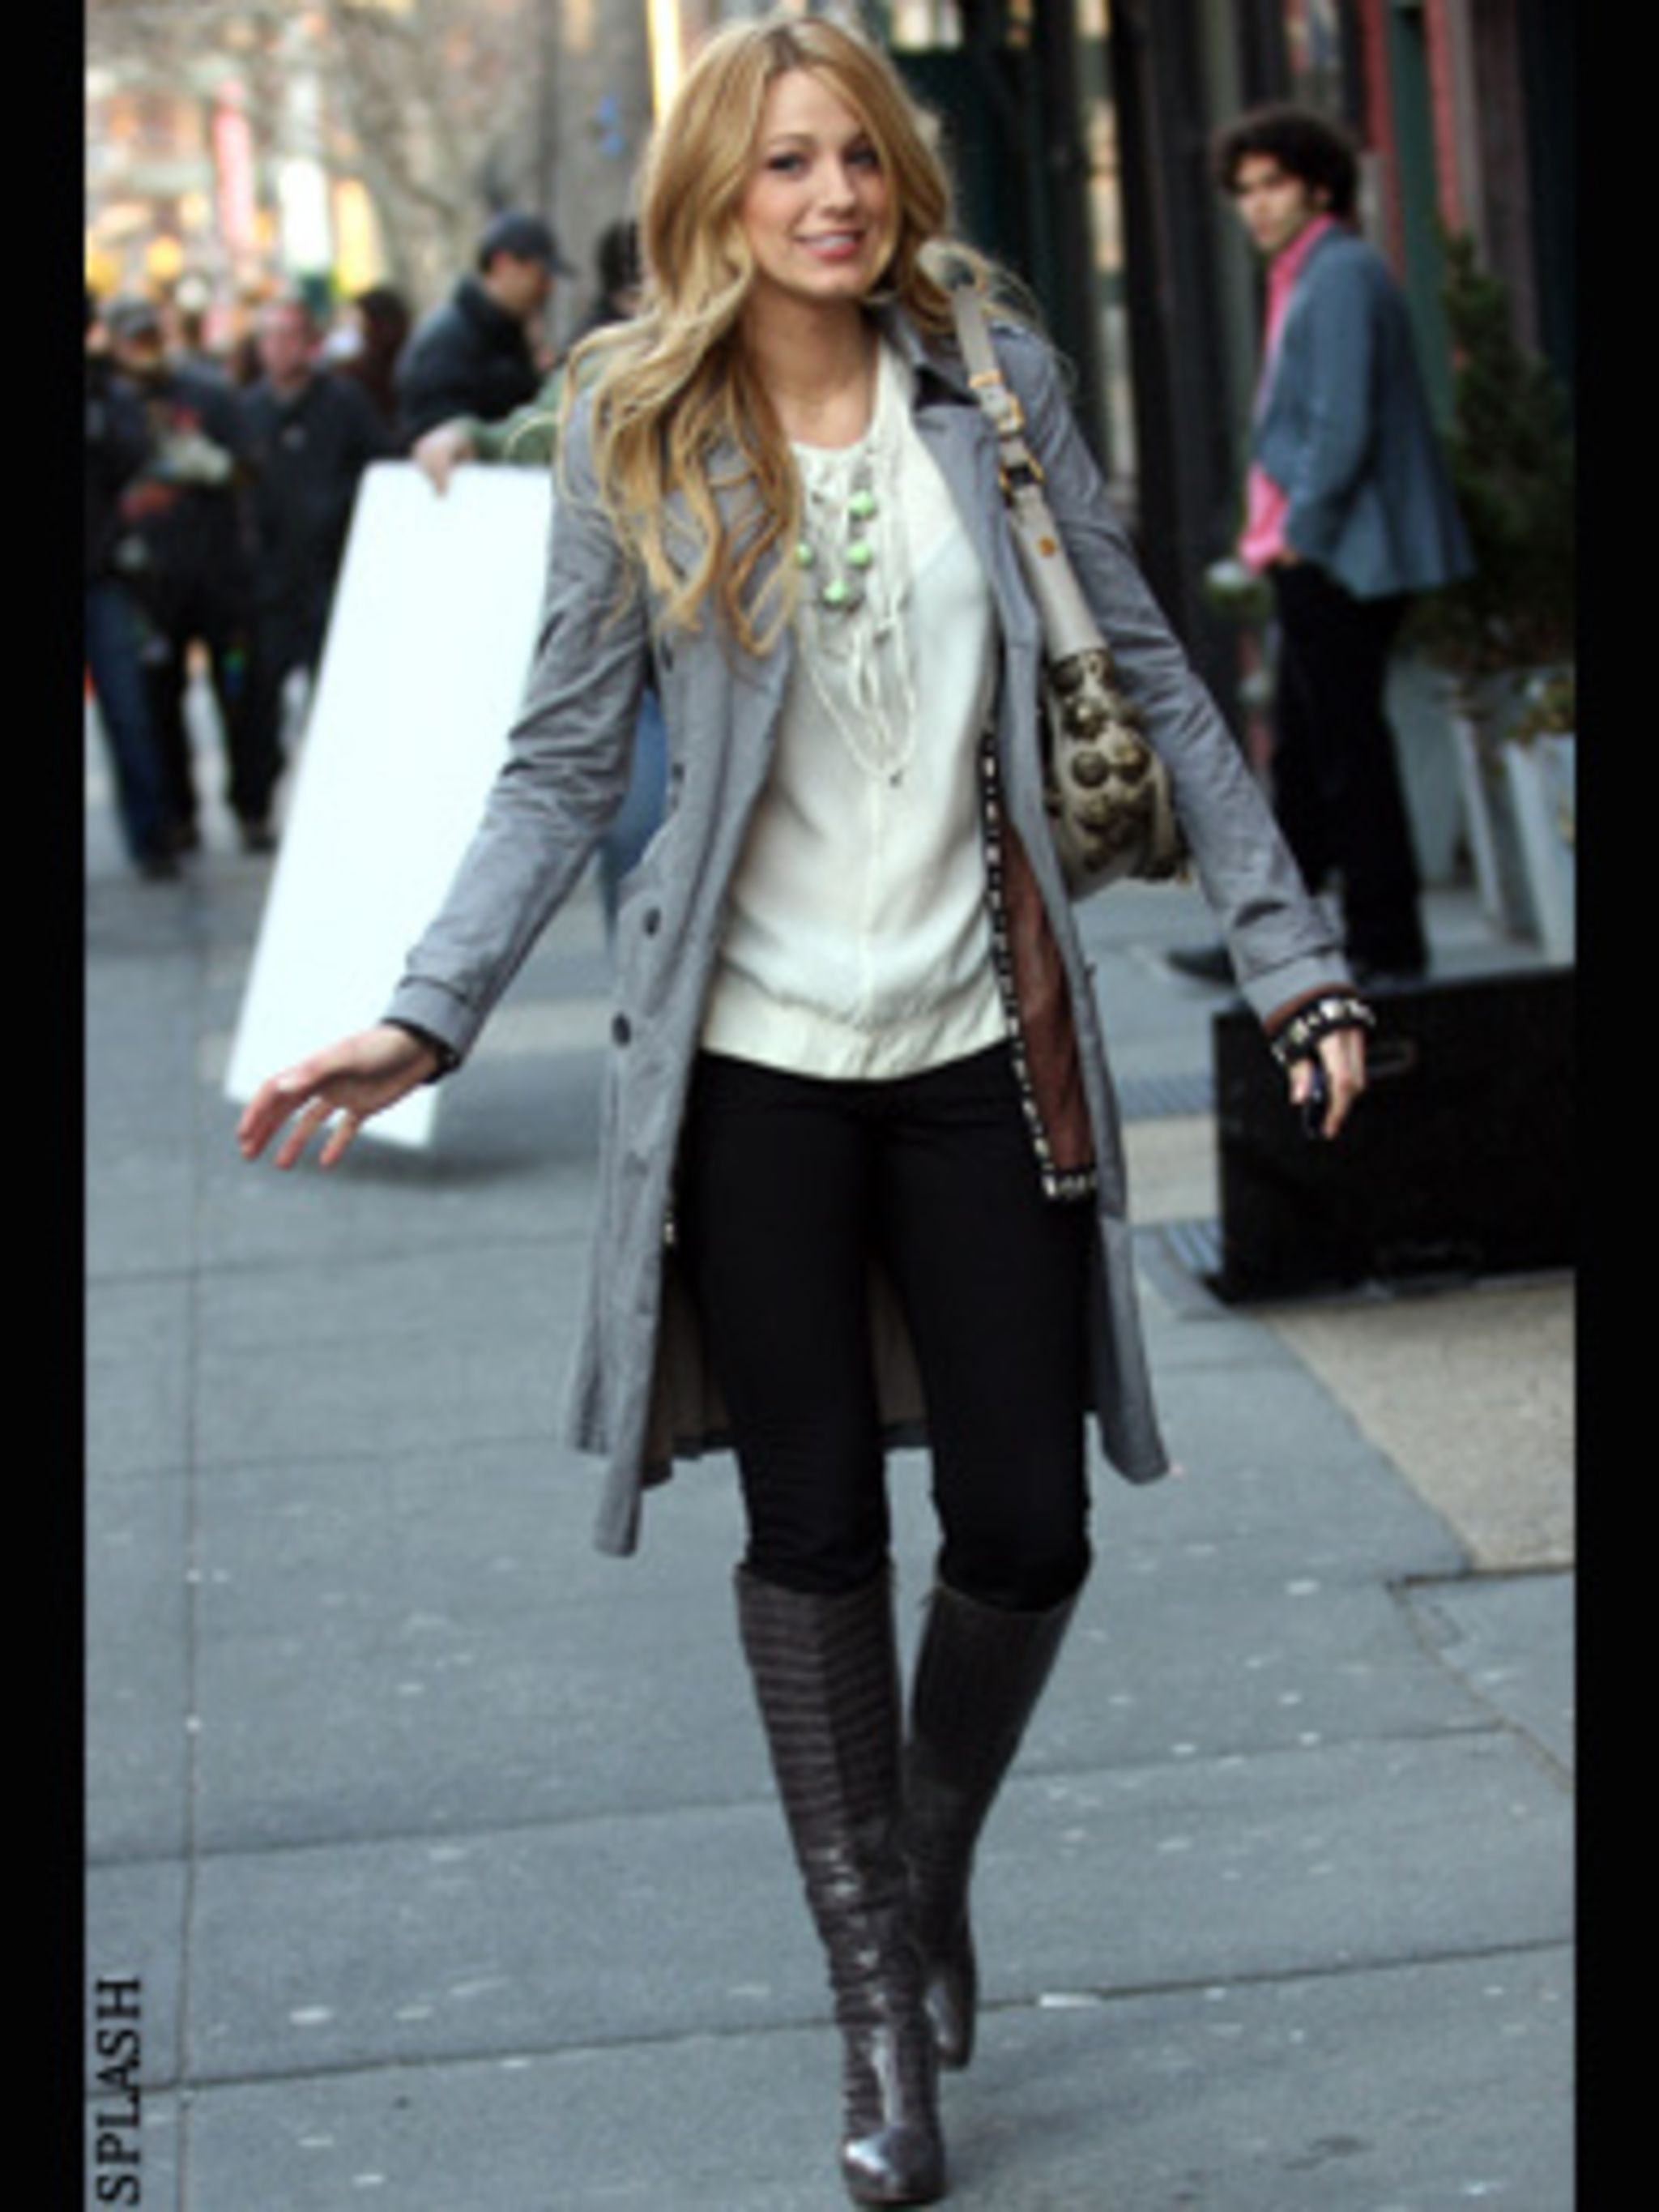 <p>Blake Lively wraps up in New York where she's filming Gossip Girl</p>